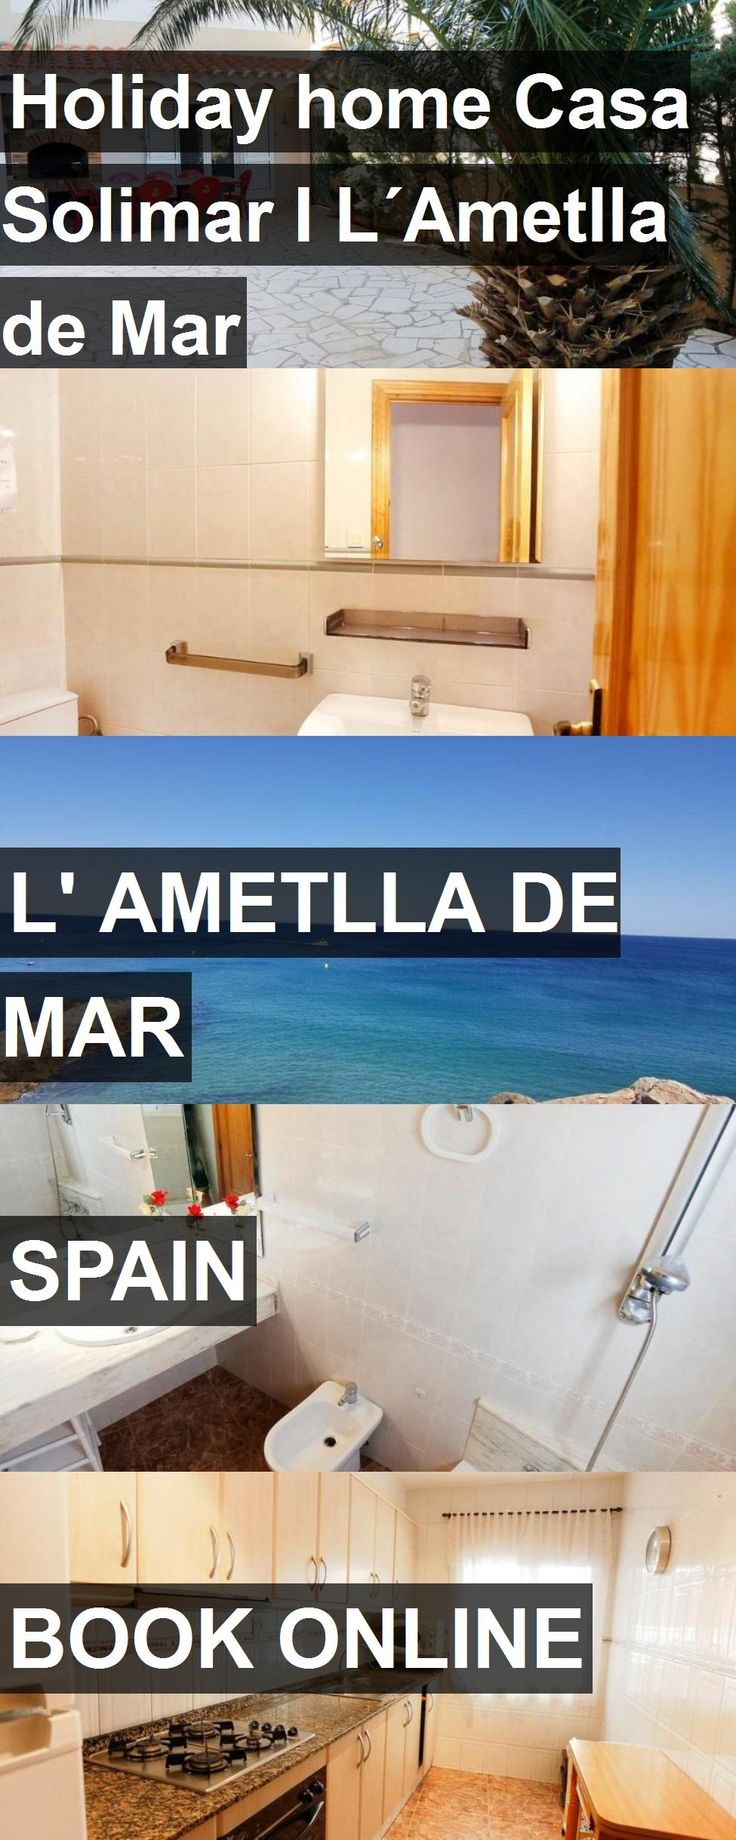 Hotel Holiday home Casa Solimar I L´Ametlla de Mar in l' Ametlla de Mar, Spain. For more information, photos, reviews and best prices please follow the link. #Spain #l'AmetlladeMar #HolidayhomeCasaSolimarIL´AmetlladeMar #hotel #travel #vacation